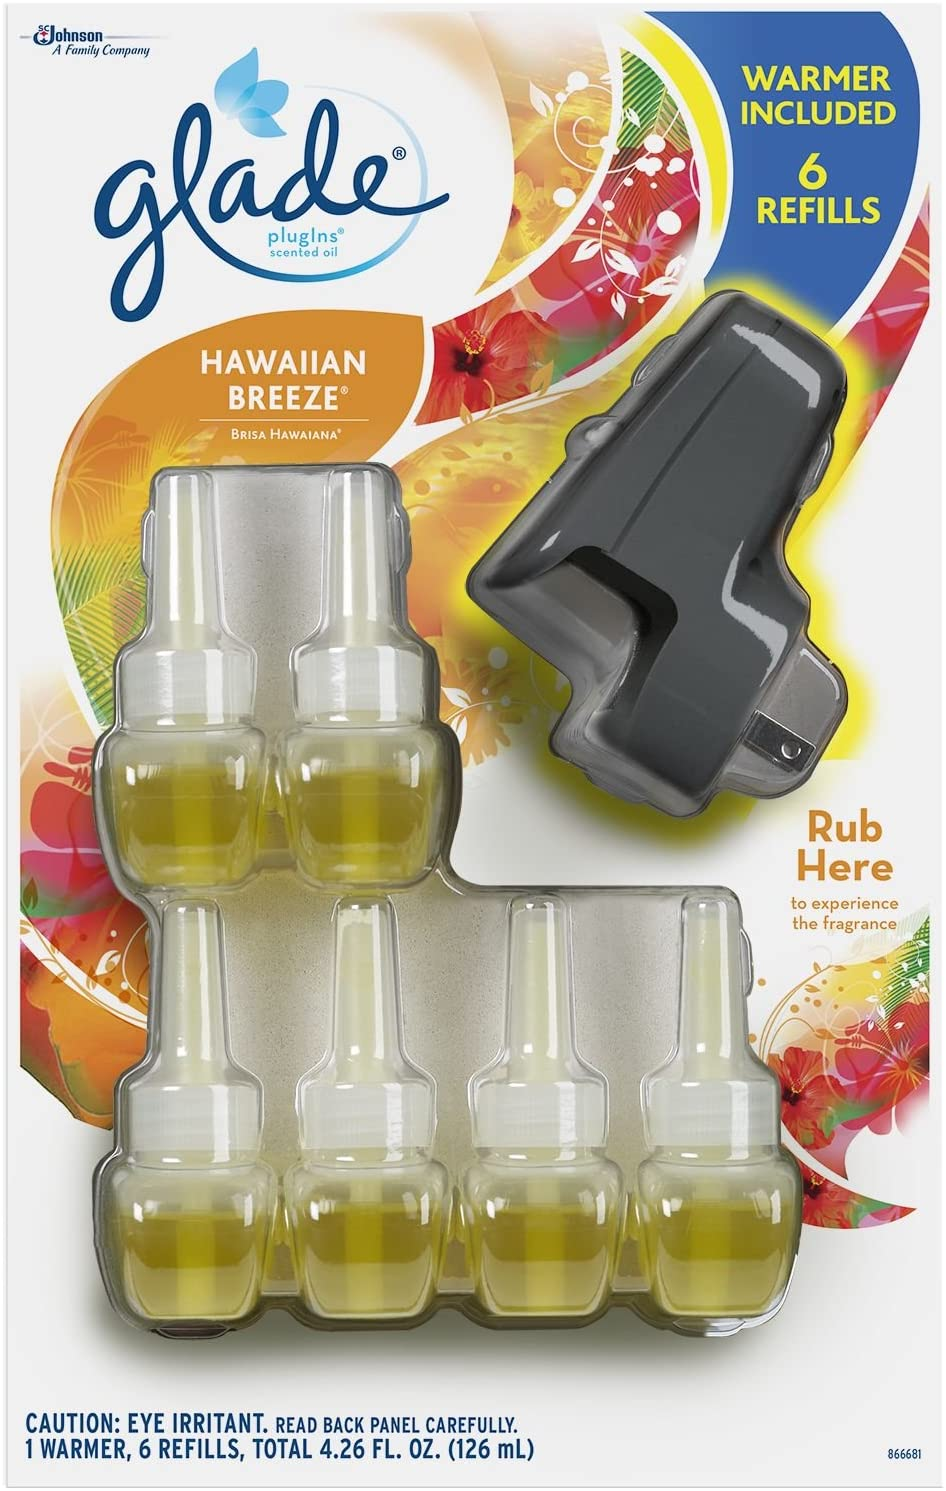 Glade Plugins Scented Oil Warmer Plus 6 Refills (2 Pack) by Glade